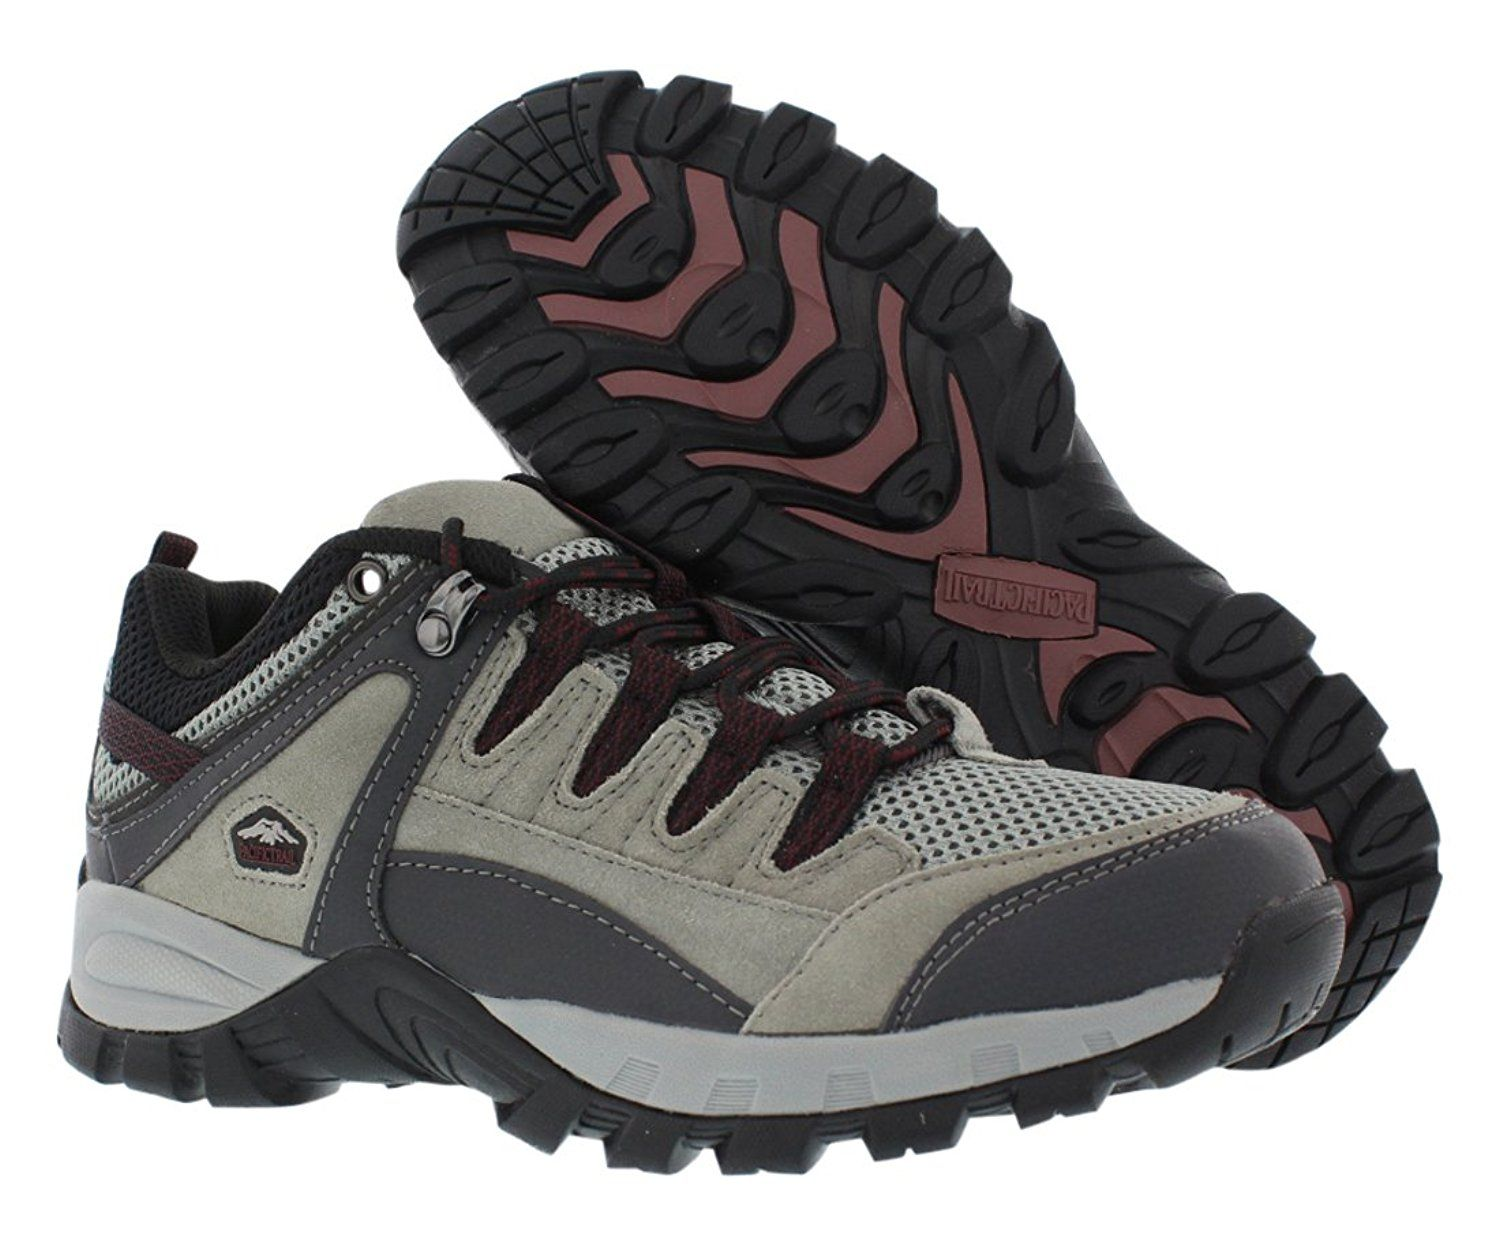 Pacific Trail Plateau Women's ... Hiking Shoes sale marketable with credit card for sale 8ltNANl